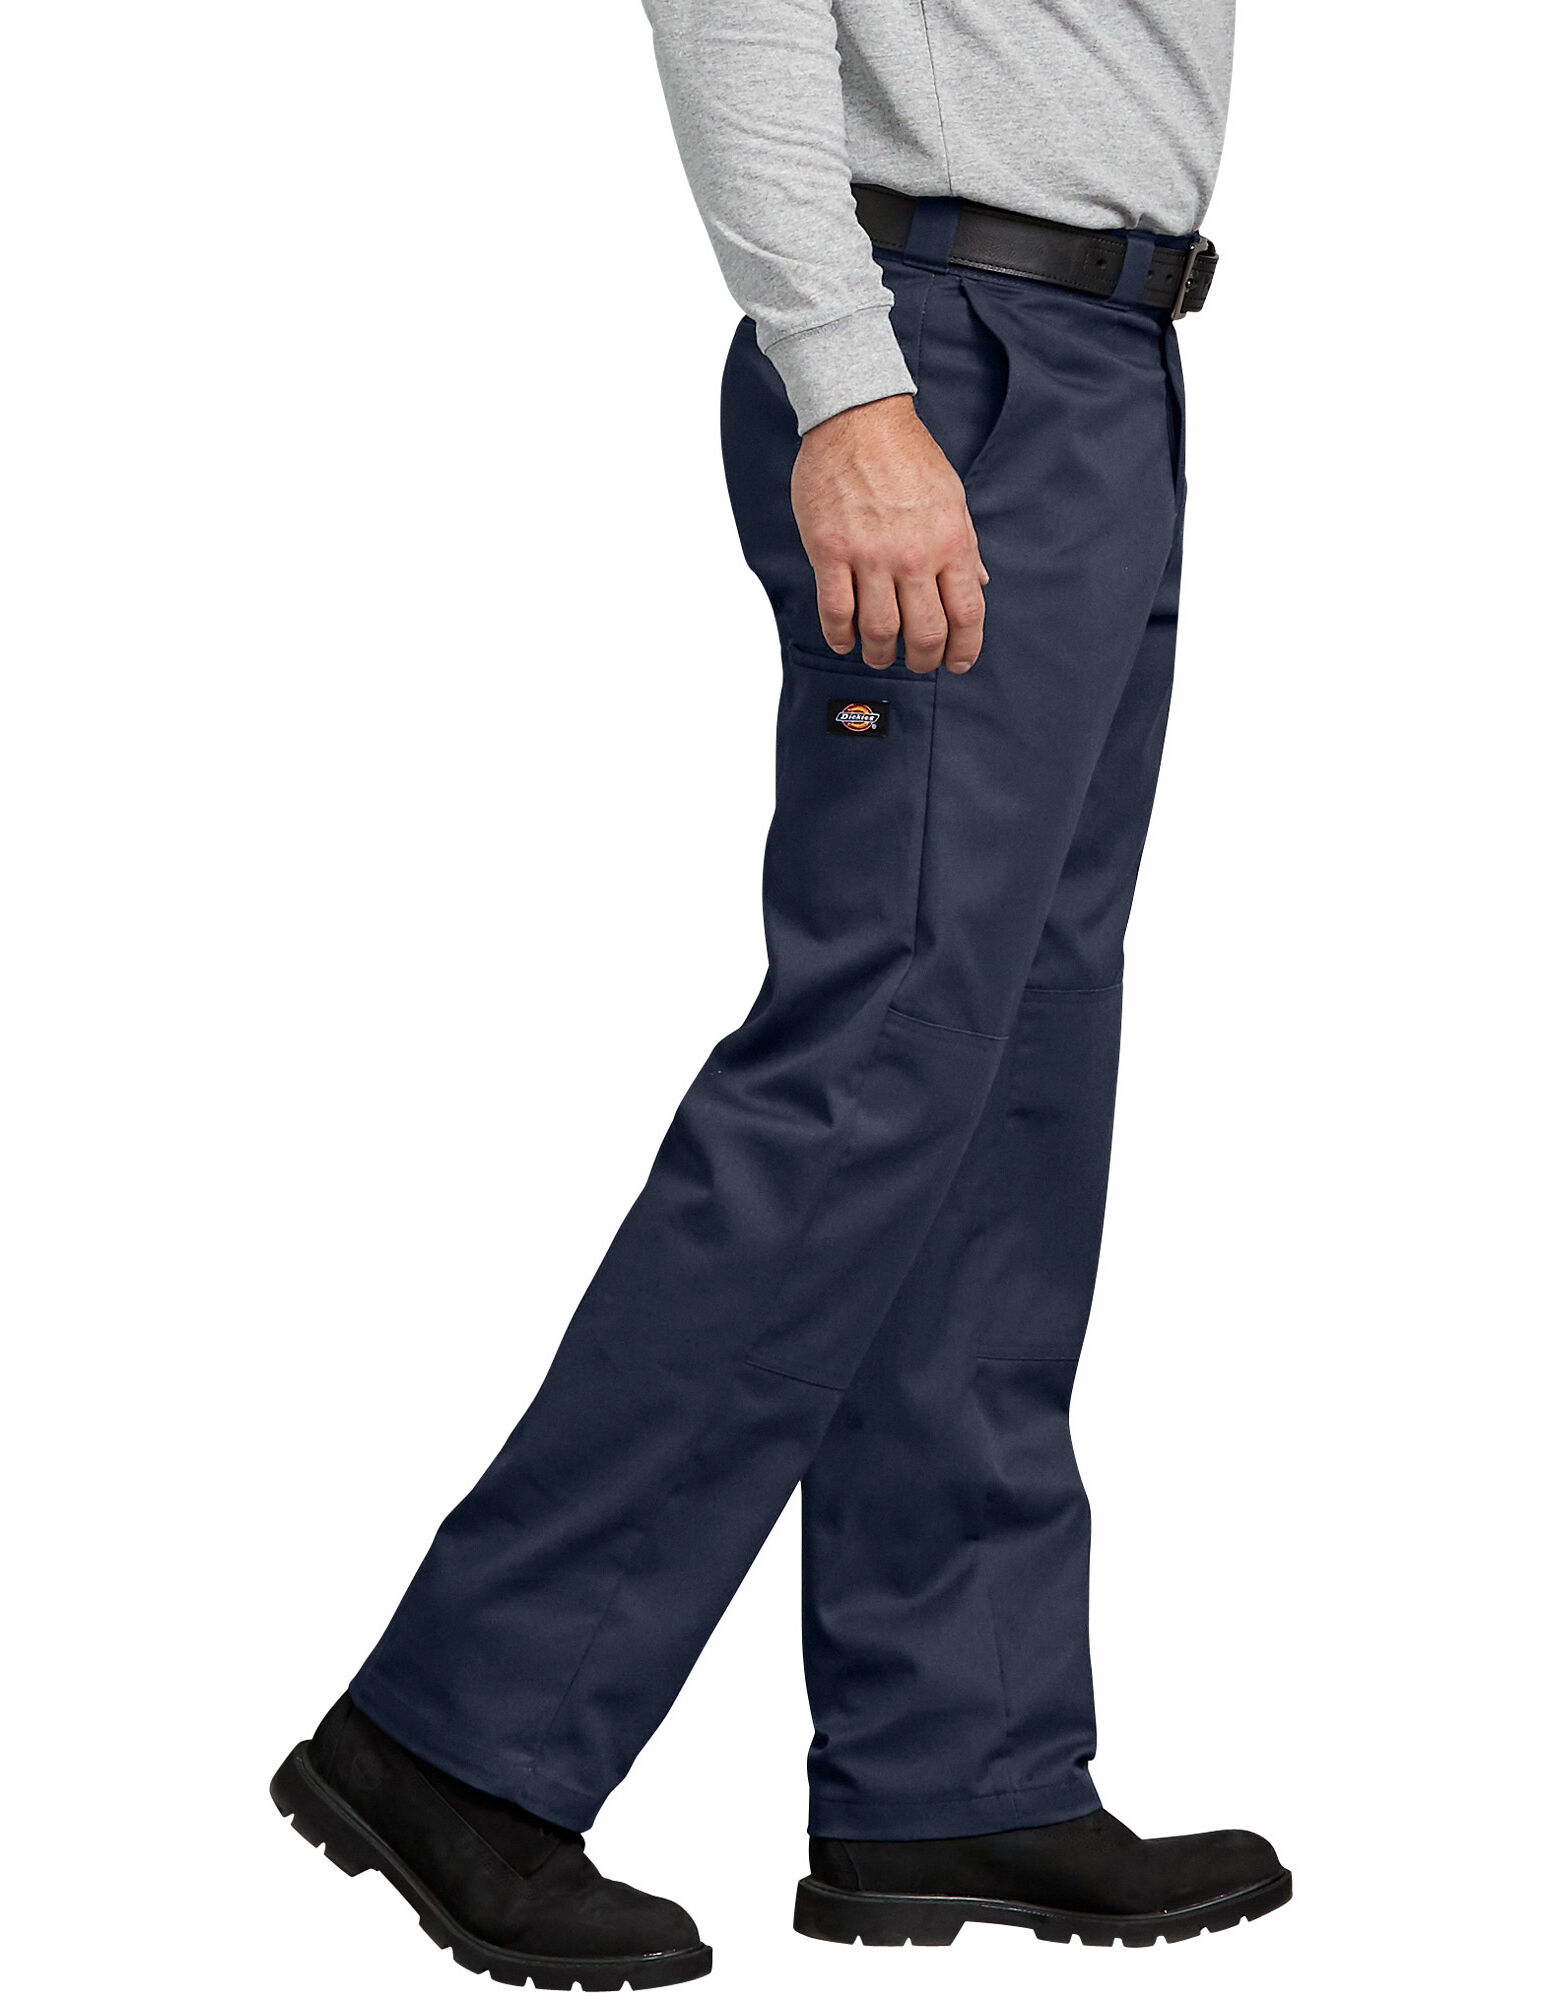 FLEX Regular Fit Straight Leg Double Knee Work Pants-Dickies Canada